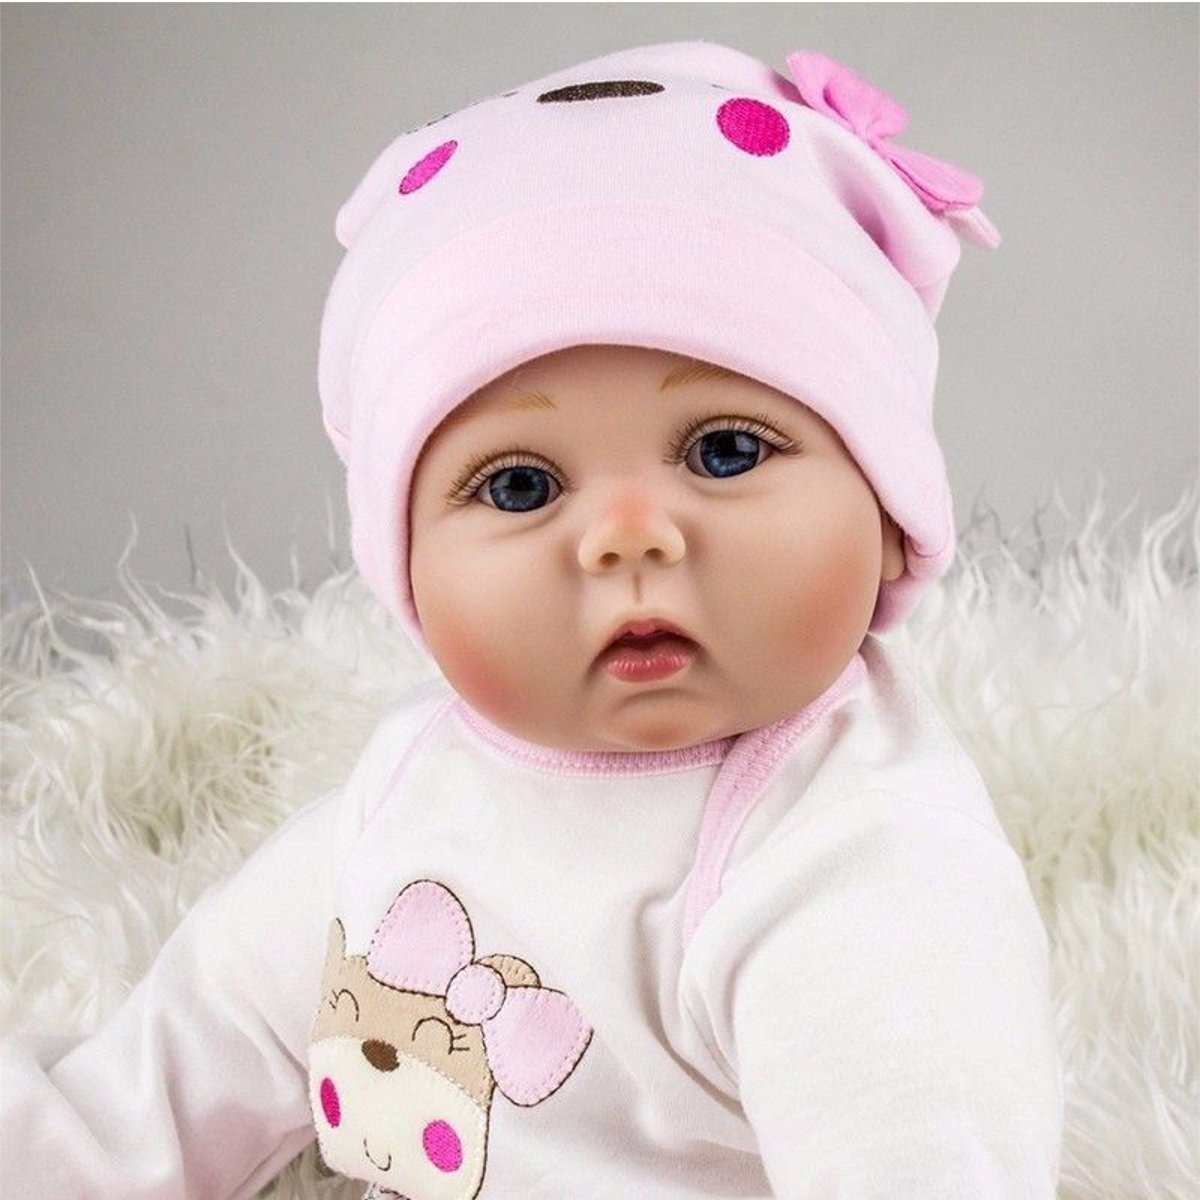 NPK 19 Inch 50cm Reborn Baby Soft Silicone Doll Handmade Lifelike Baby Girl Dolls Play House Toys Birthday Gift